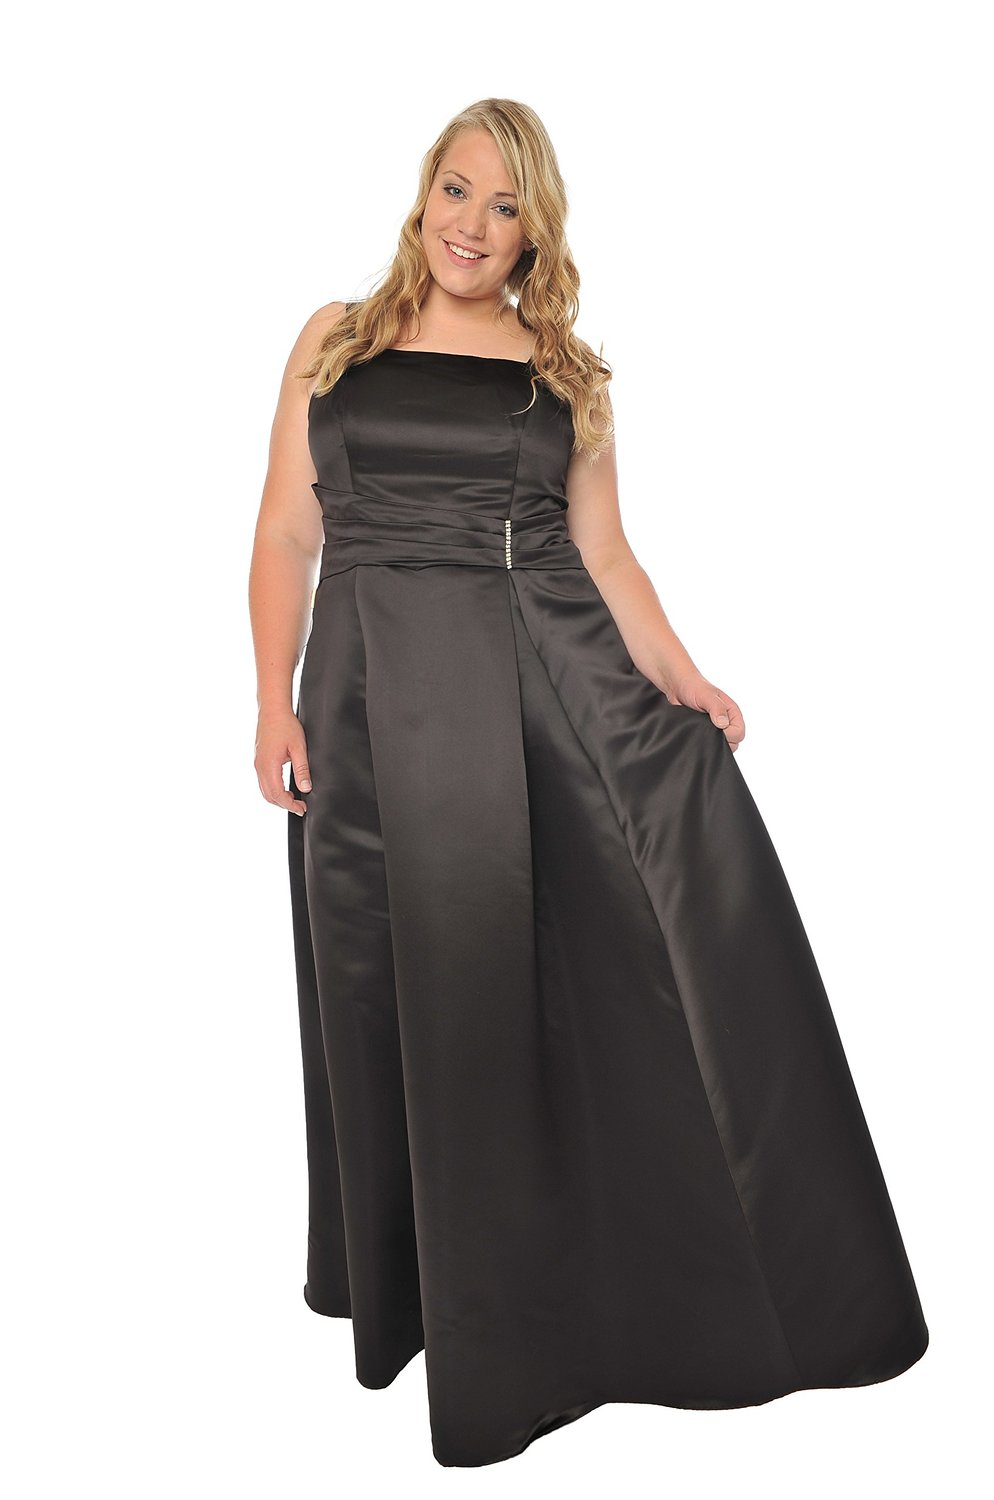 Welches abendkleid fur mollige